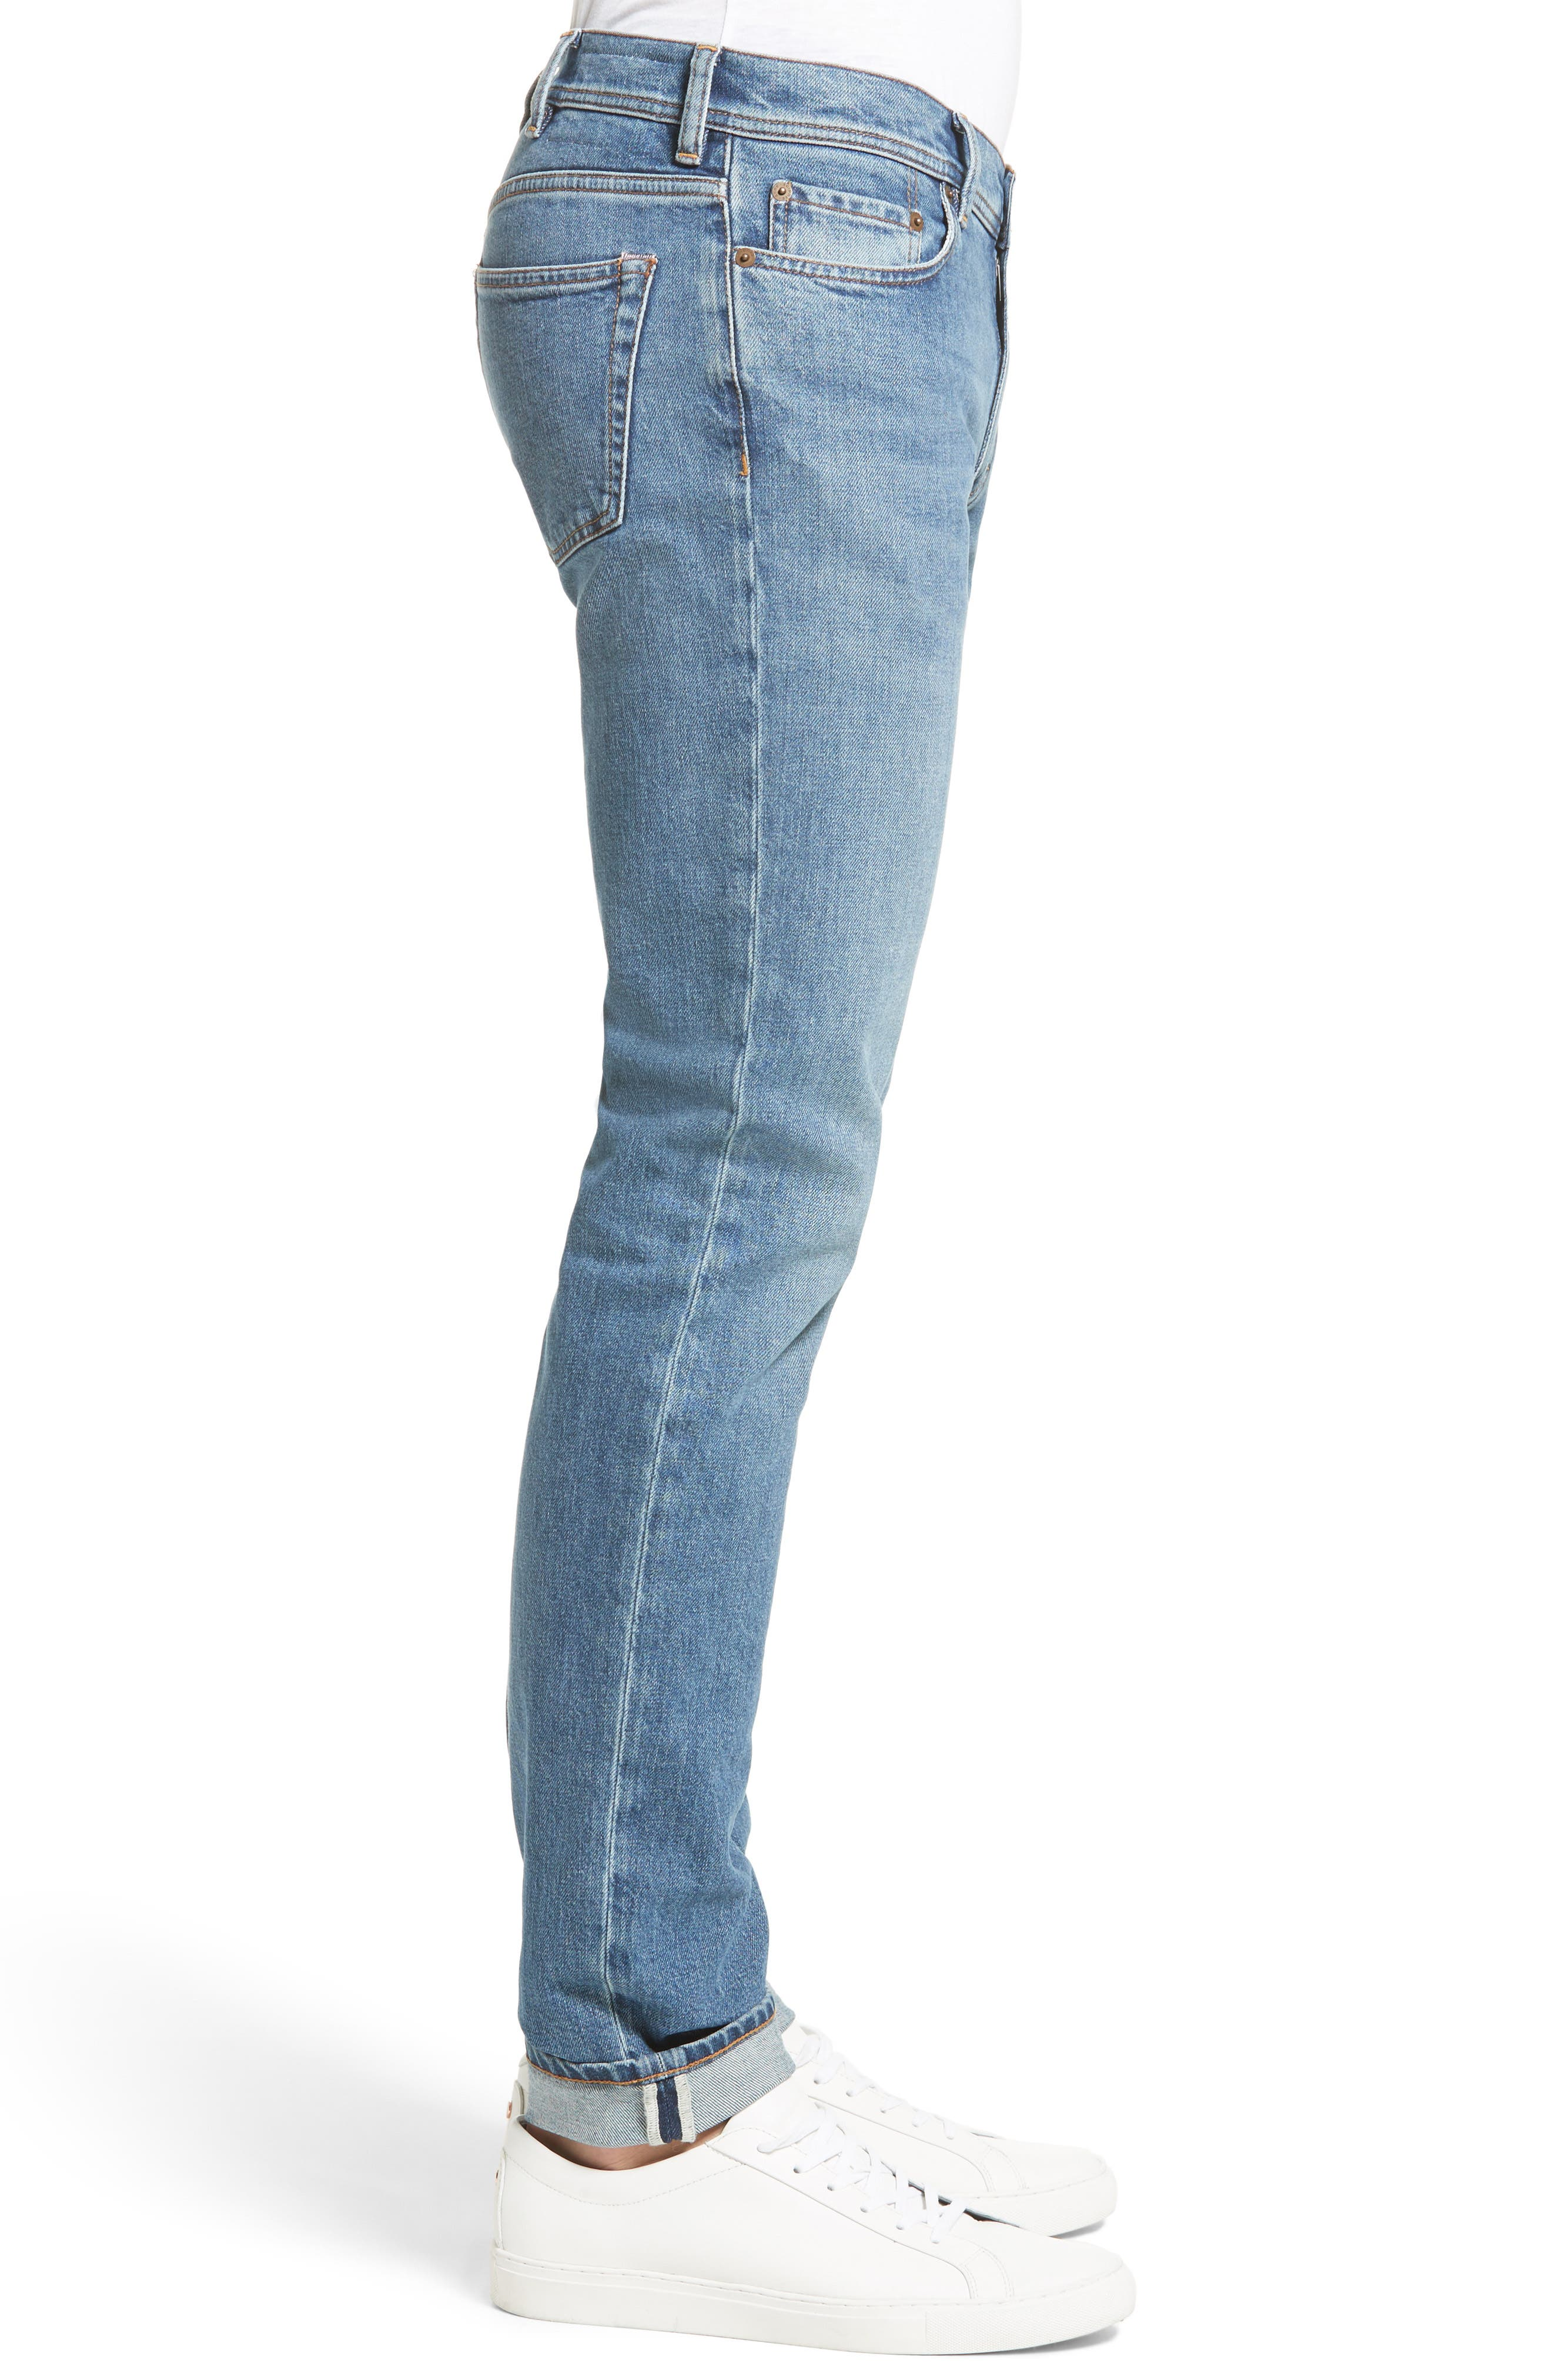 North Skinny Jeans,                             Alternate thumbnail 3, color,                             420